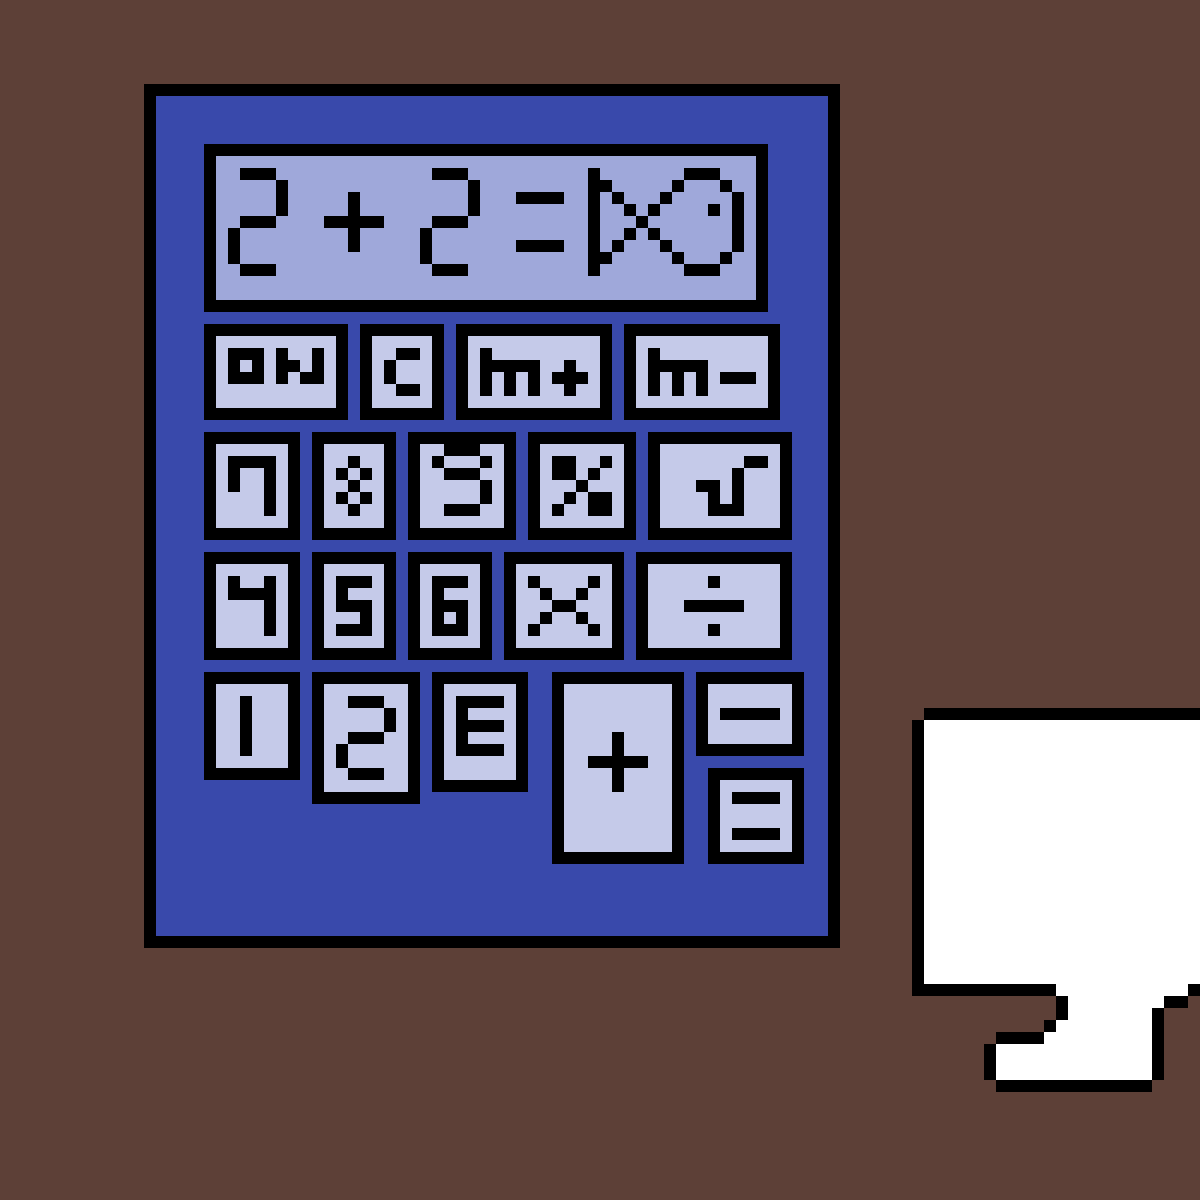 a calculator by HayliePlays